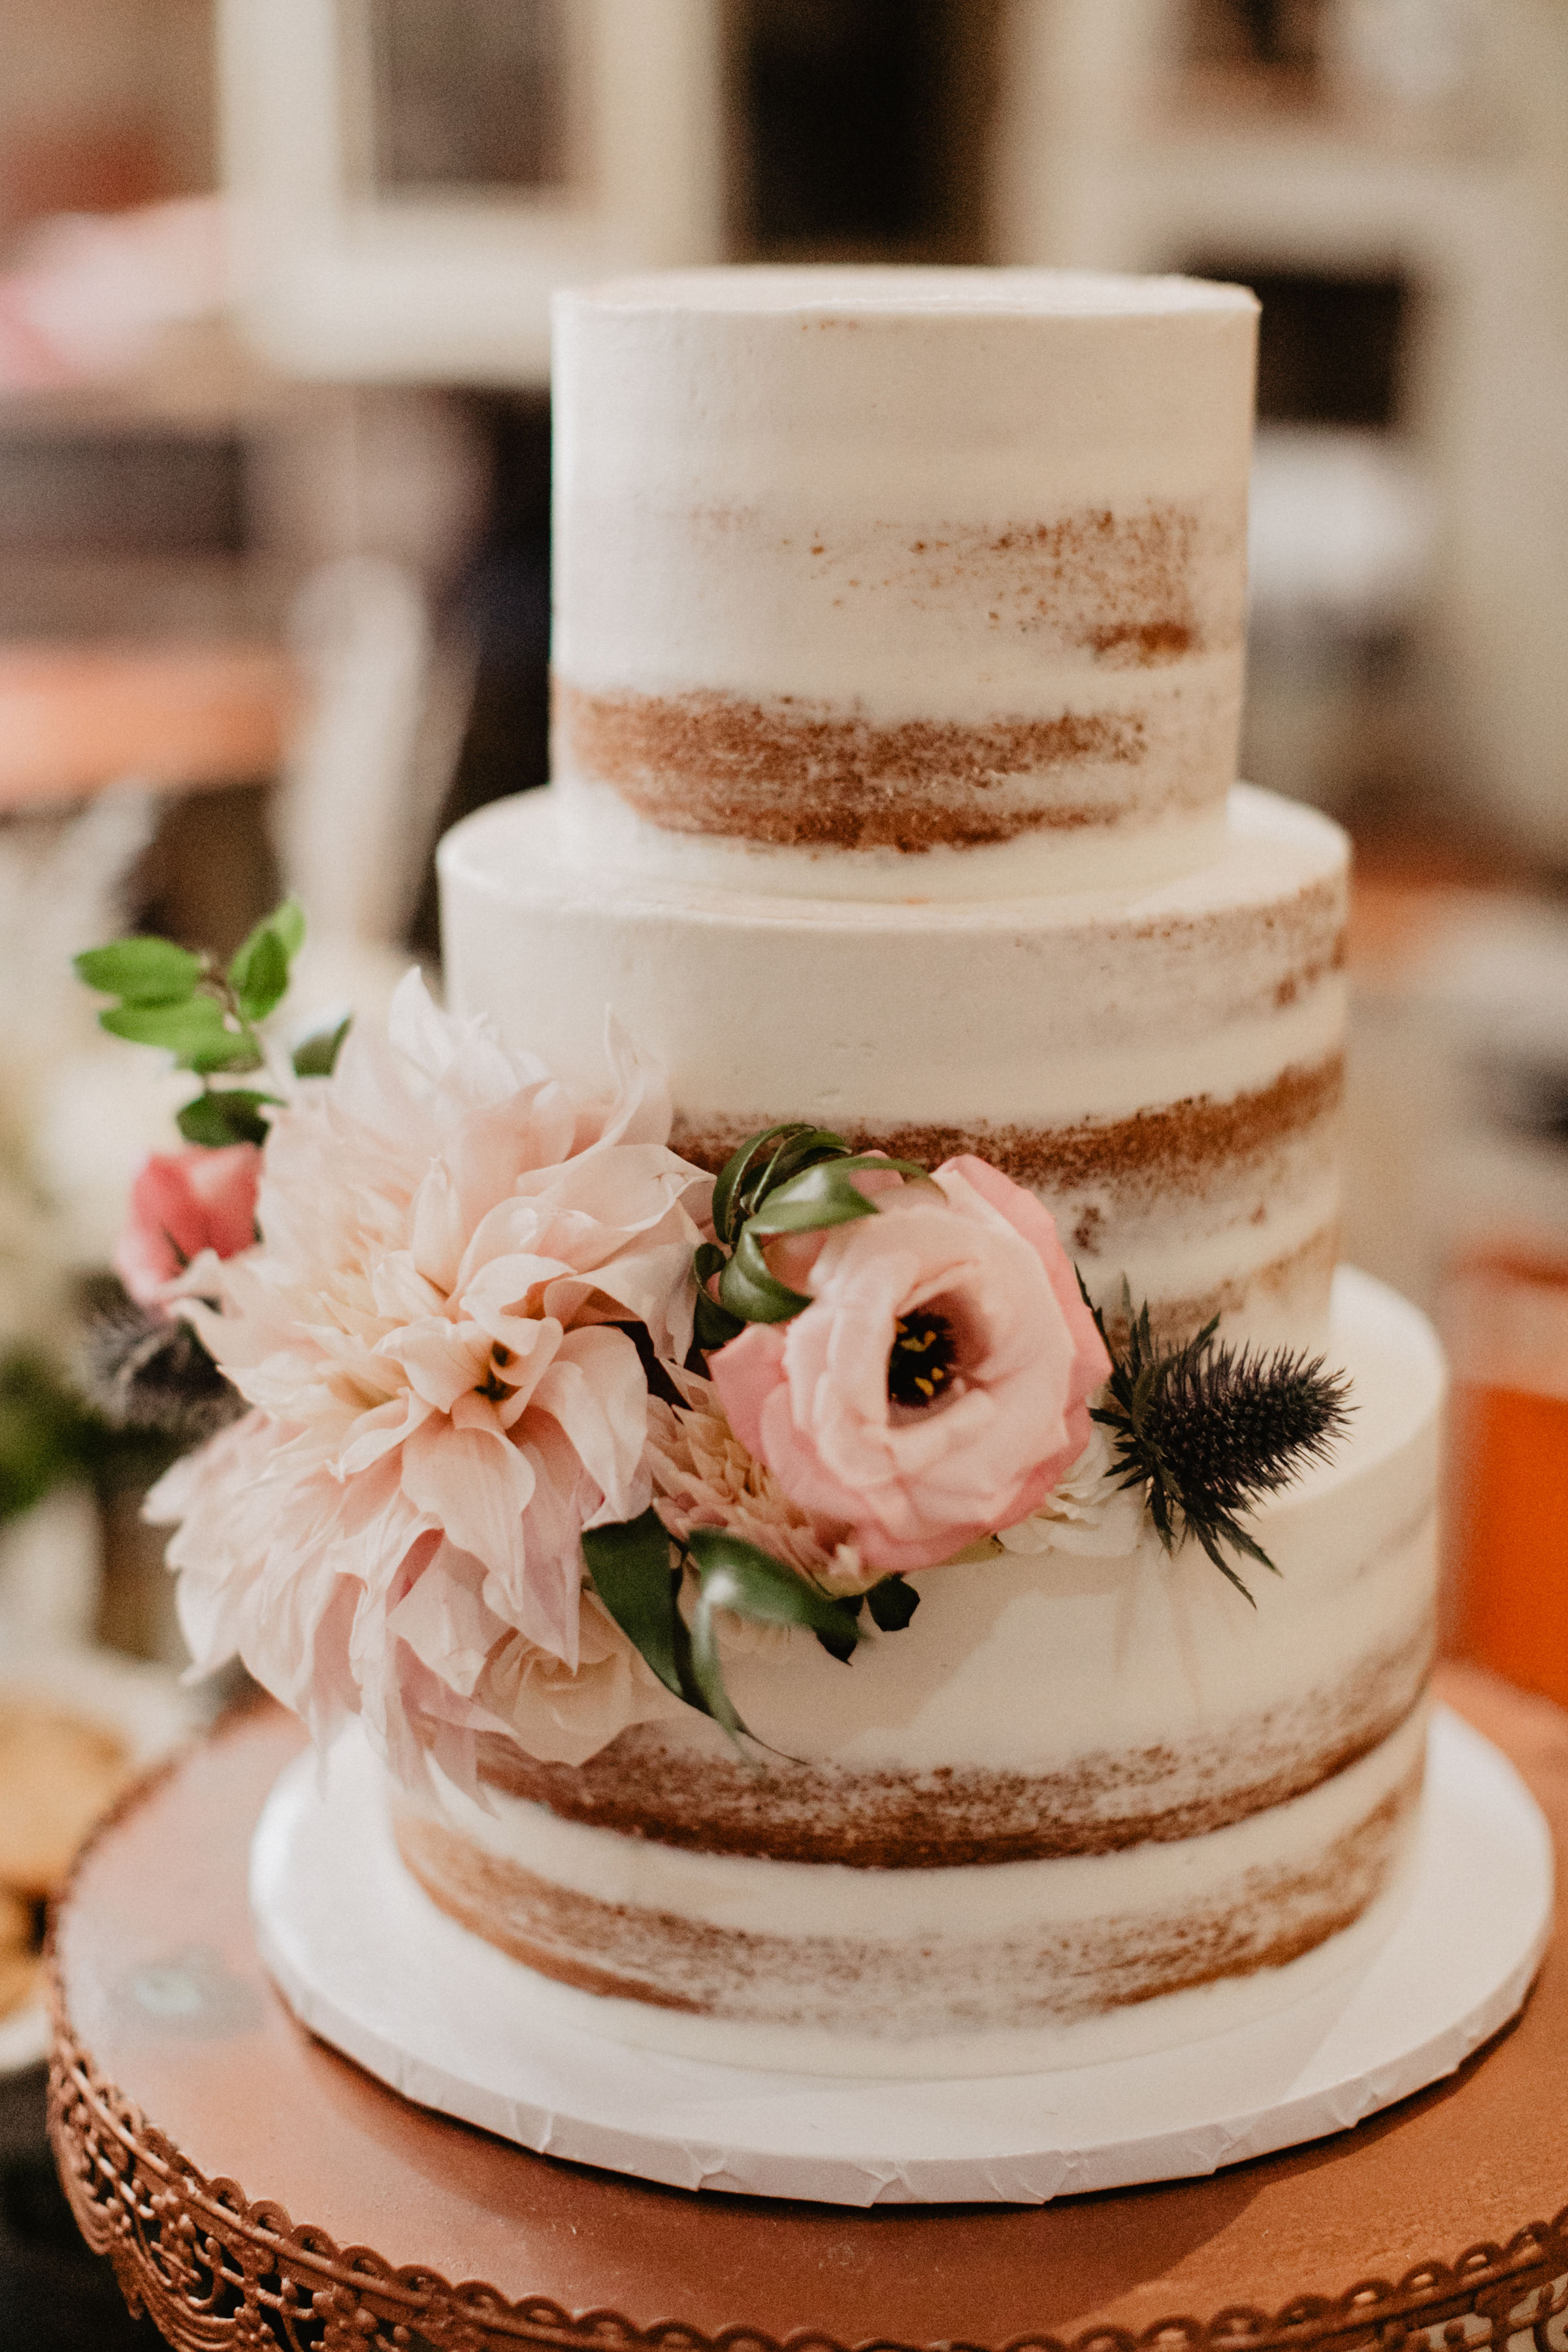 Let our team COORDINATe your wedding the Nashville way - Contact us today to set up a no obligation consultation with one of our Lead Wedding Coordinators in the Nashville area.